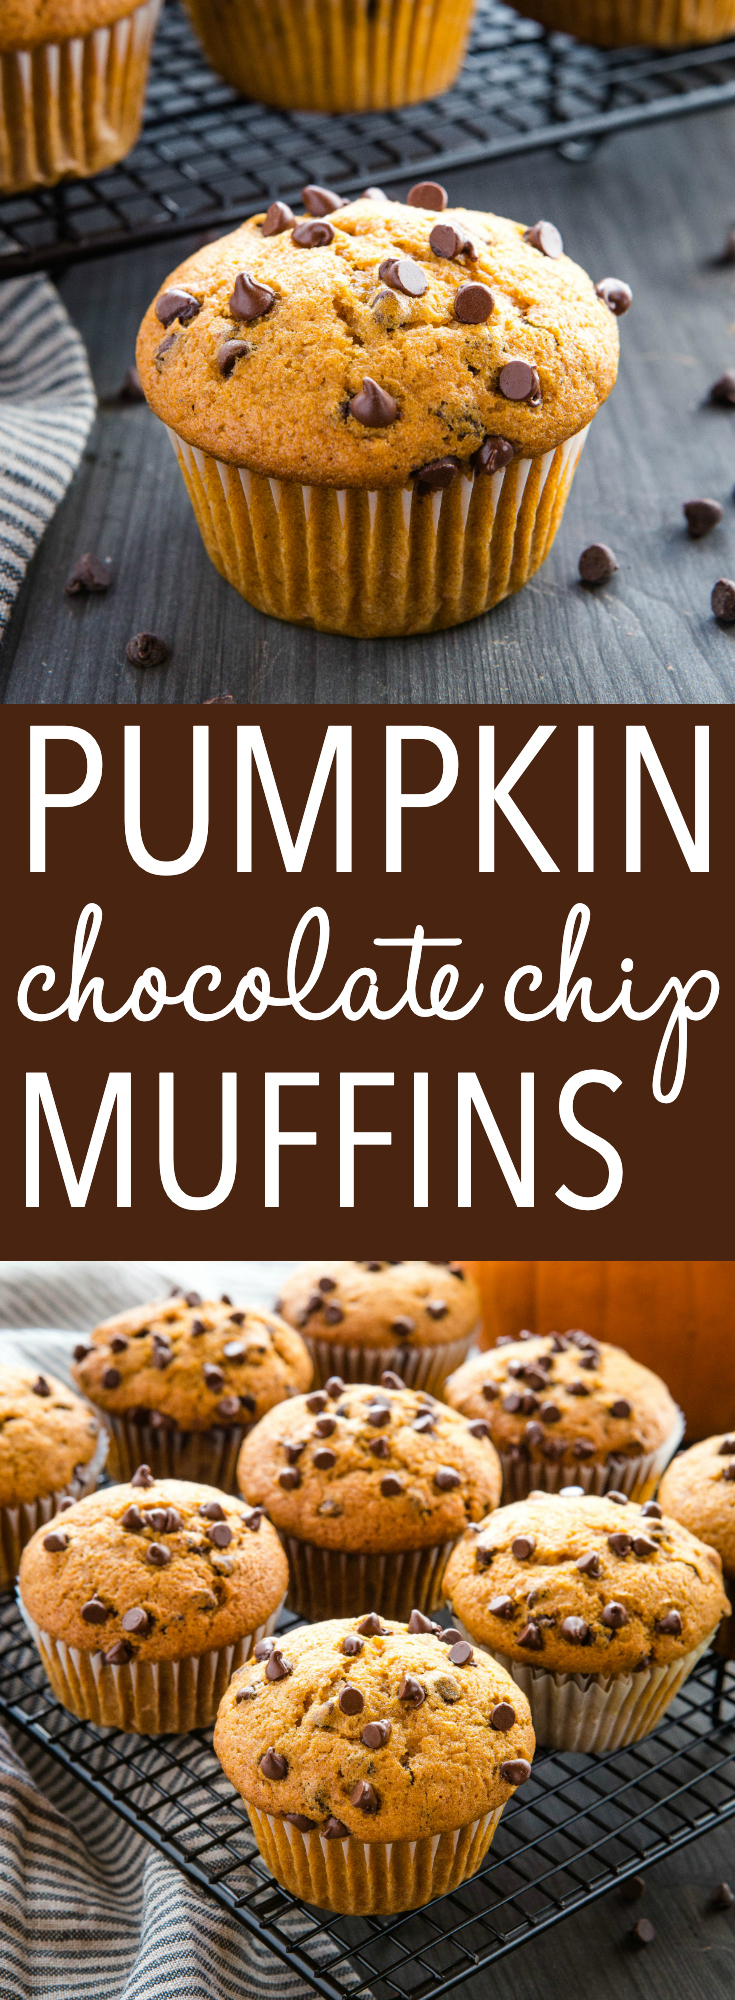 Chocolate chip pumpkin muffins are the perfect sweet snack. Light, fluffy and full of real pumpkin and chocolate! Make this simple muffin recipe in one bowl! Recipe from thebusybaker.ca! #pumpkin #chocolatechip #muffins #baking #homebaking #fall #winter #easyrecipe #coffeebreak via @busybakerblog